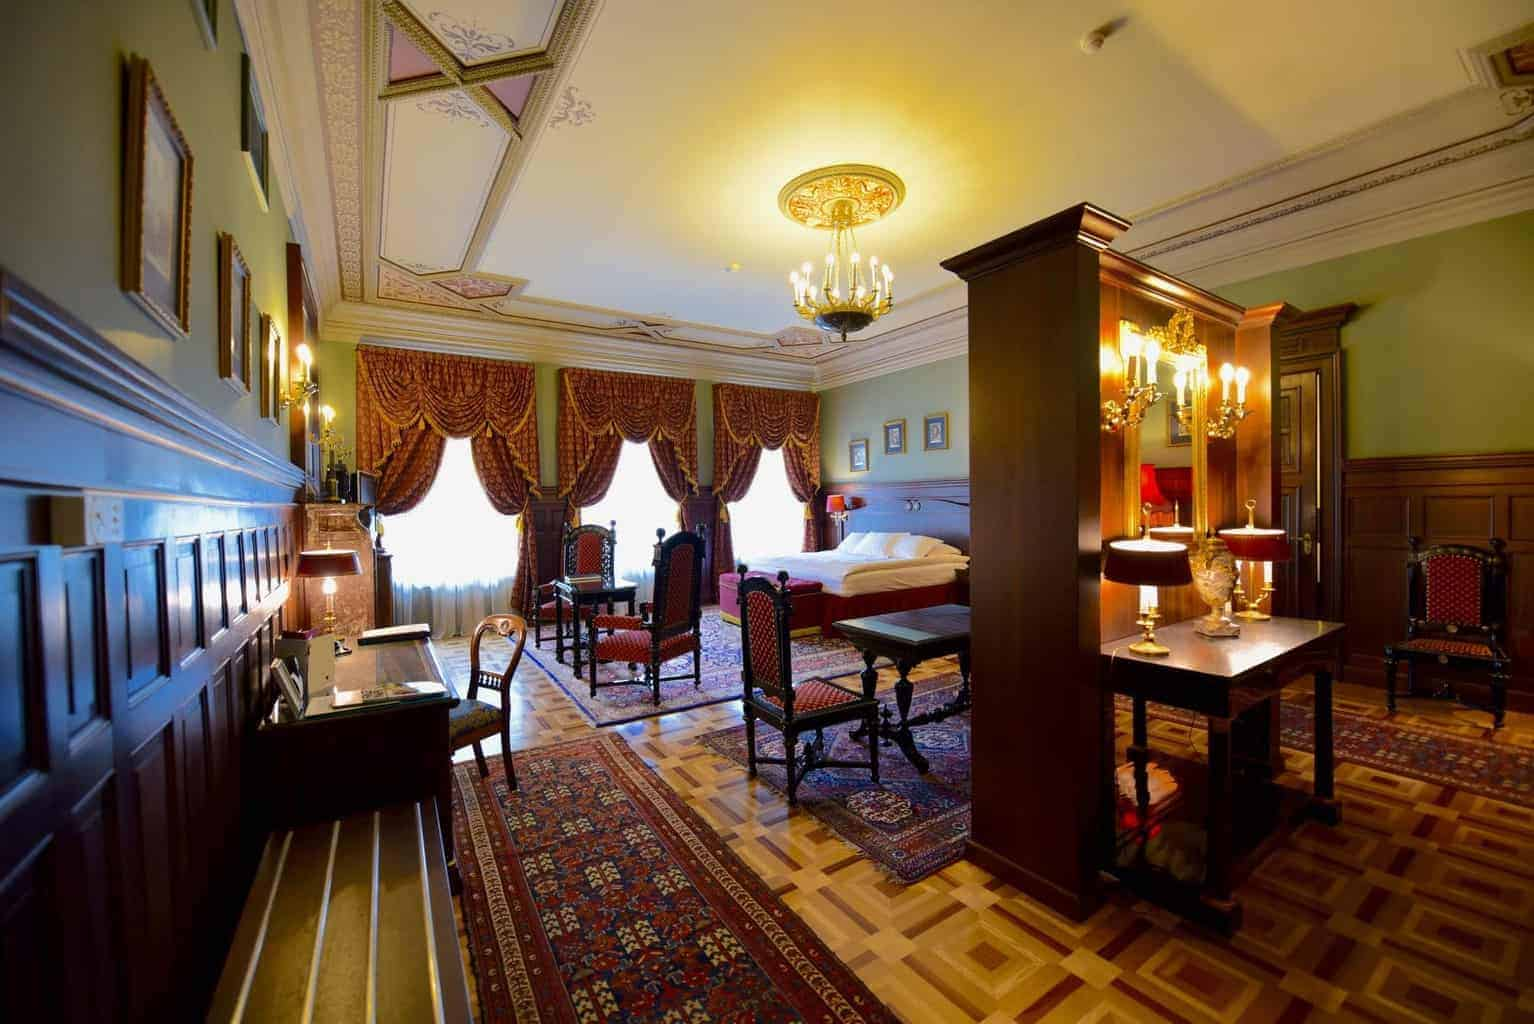 Gallery Park Hotel, Riga Latvia Royal Suite